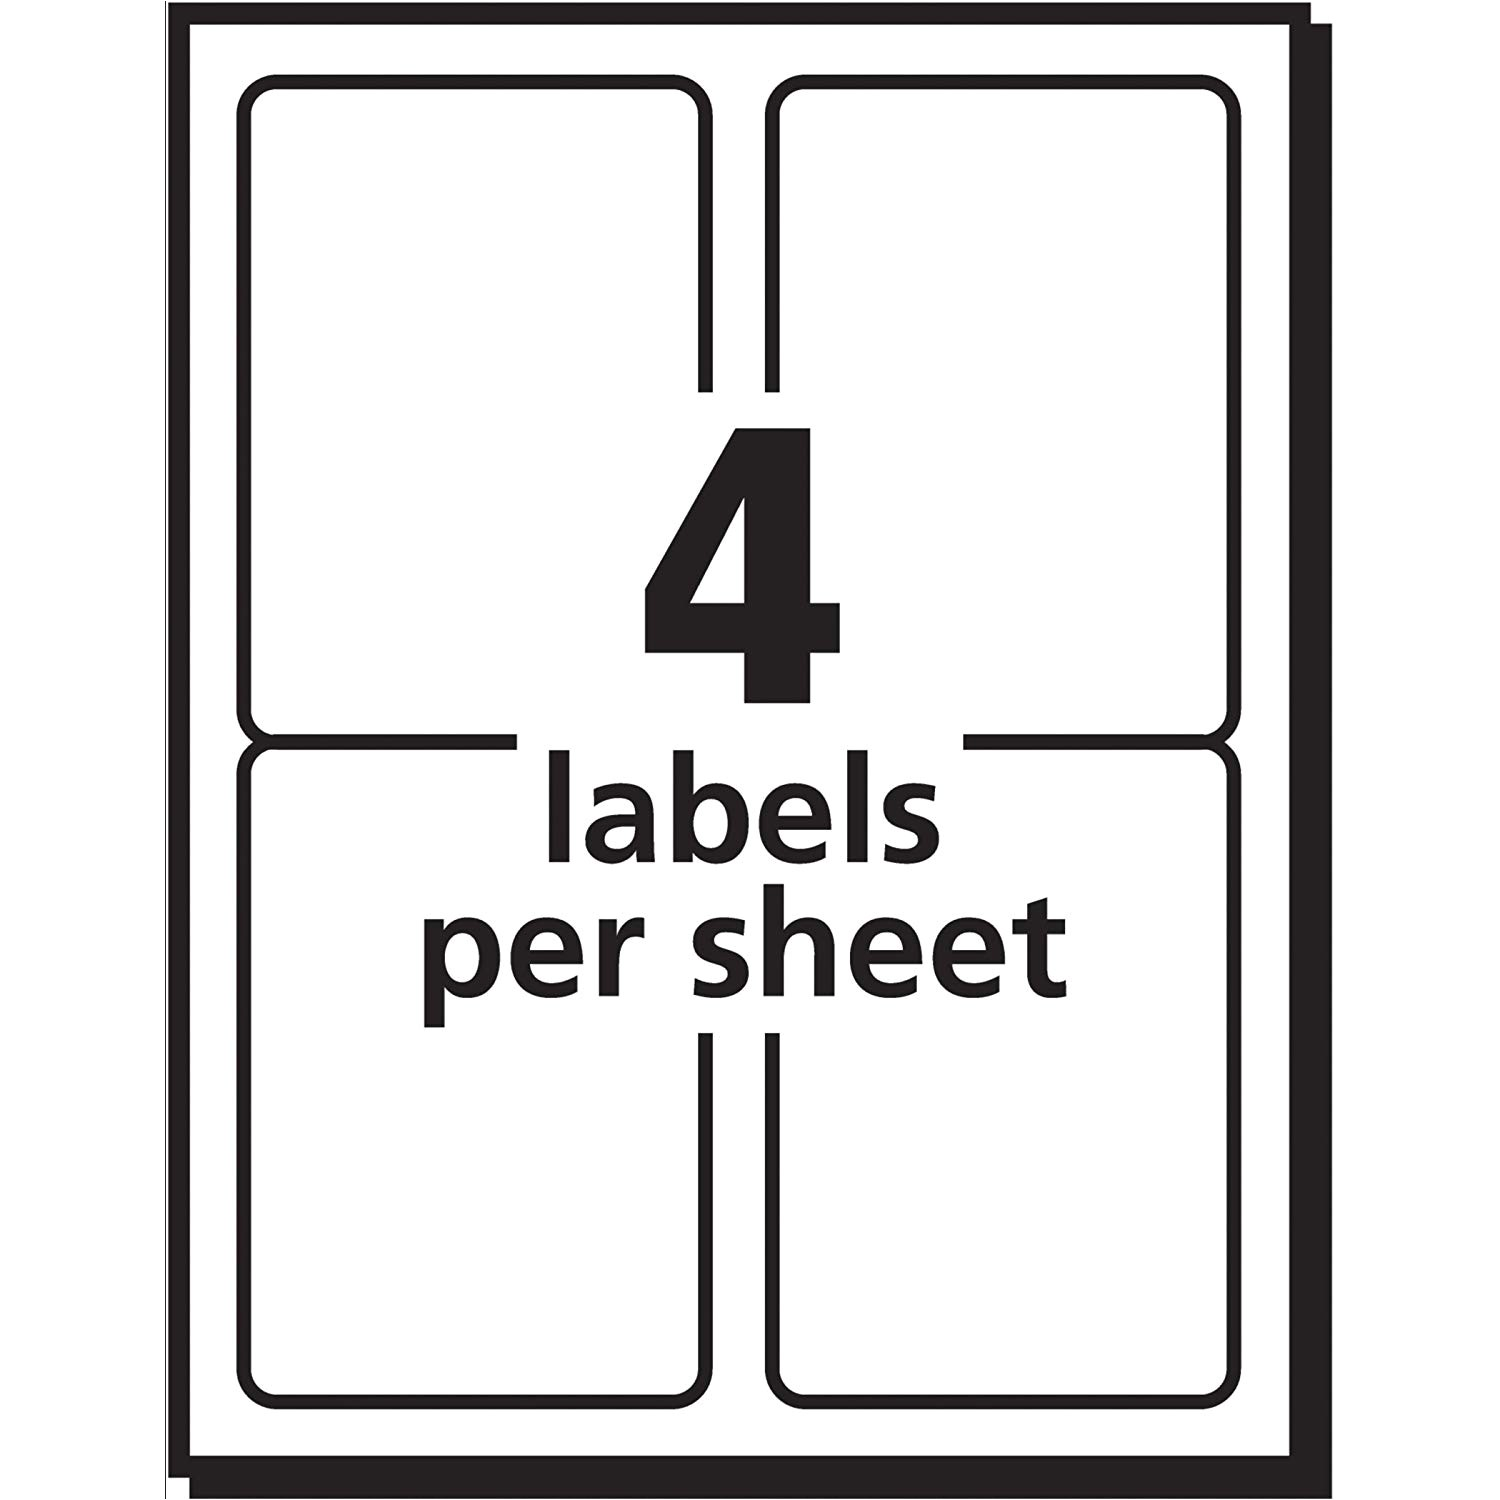 Avery Shipping Label Template 8168 Avery Shipping Labels for Inkjet Printers 3 5 X 5 Inches